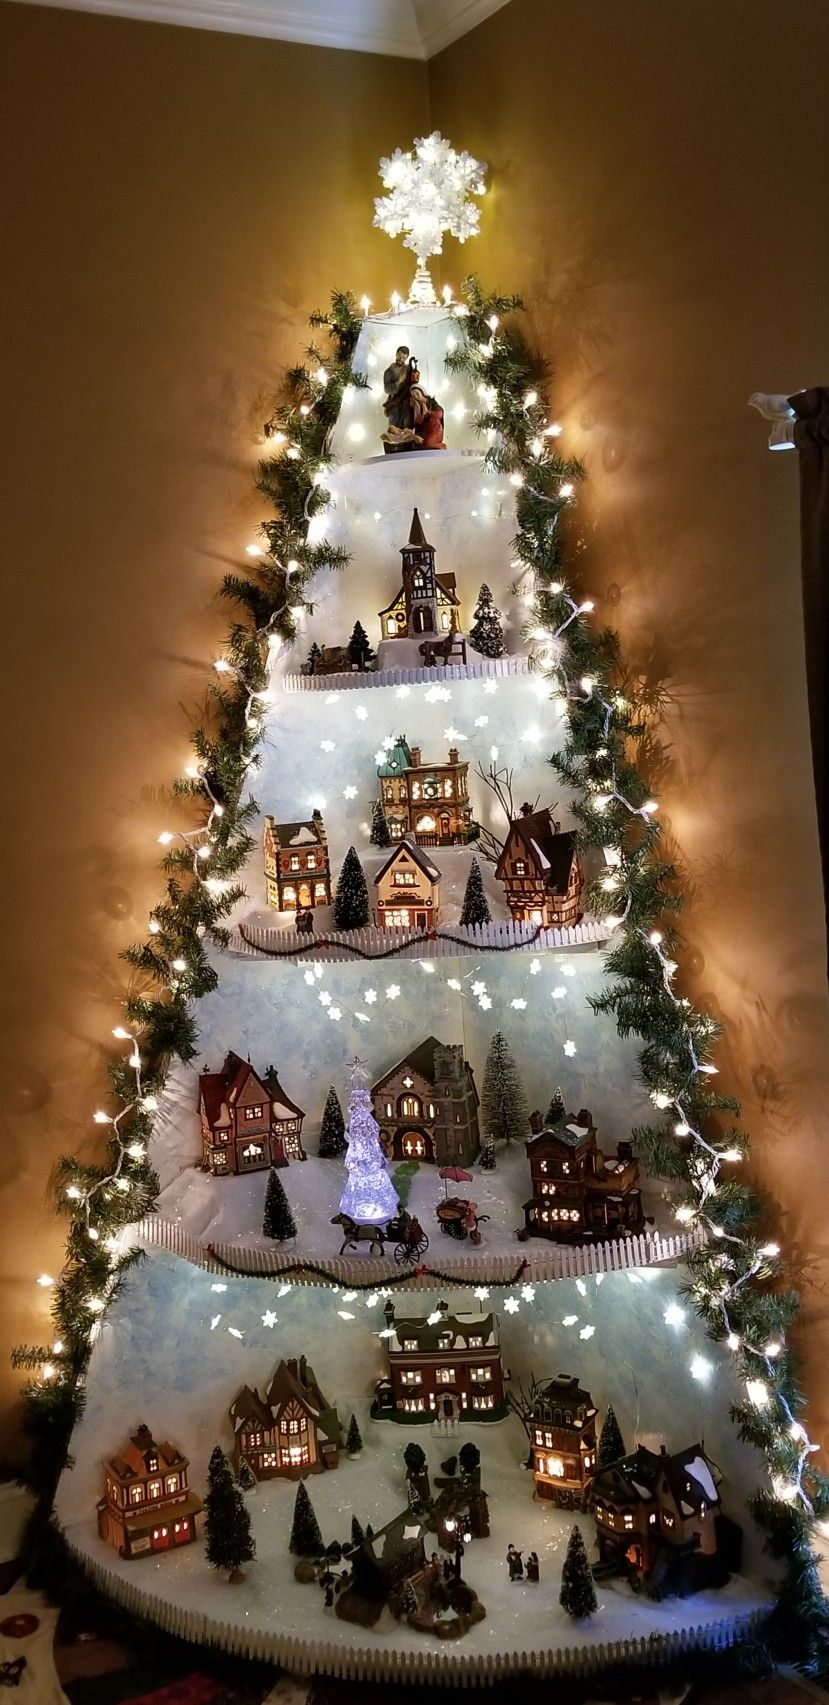 Christmas Village Display.Christmas Village Display Tree Christmas Tree Christmas